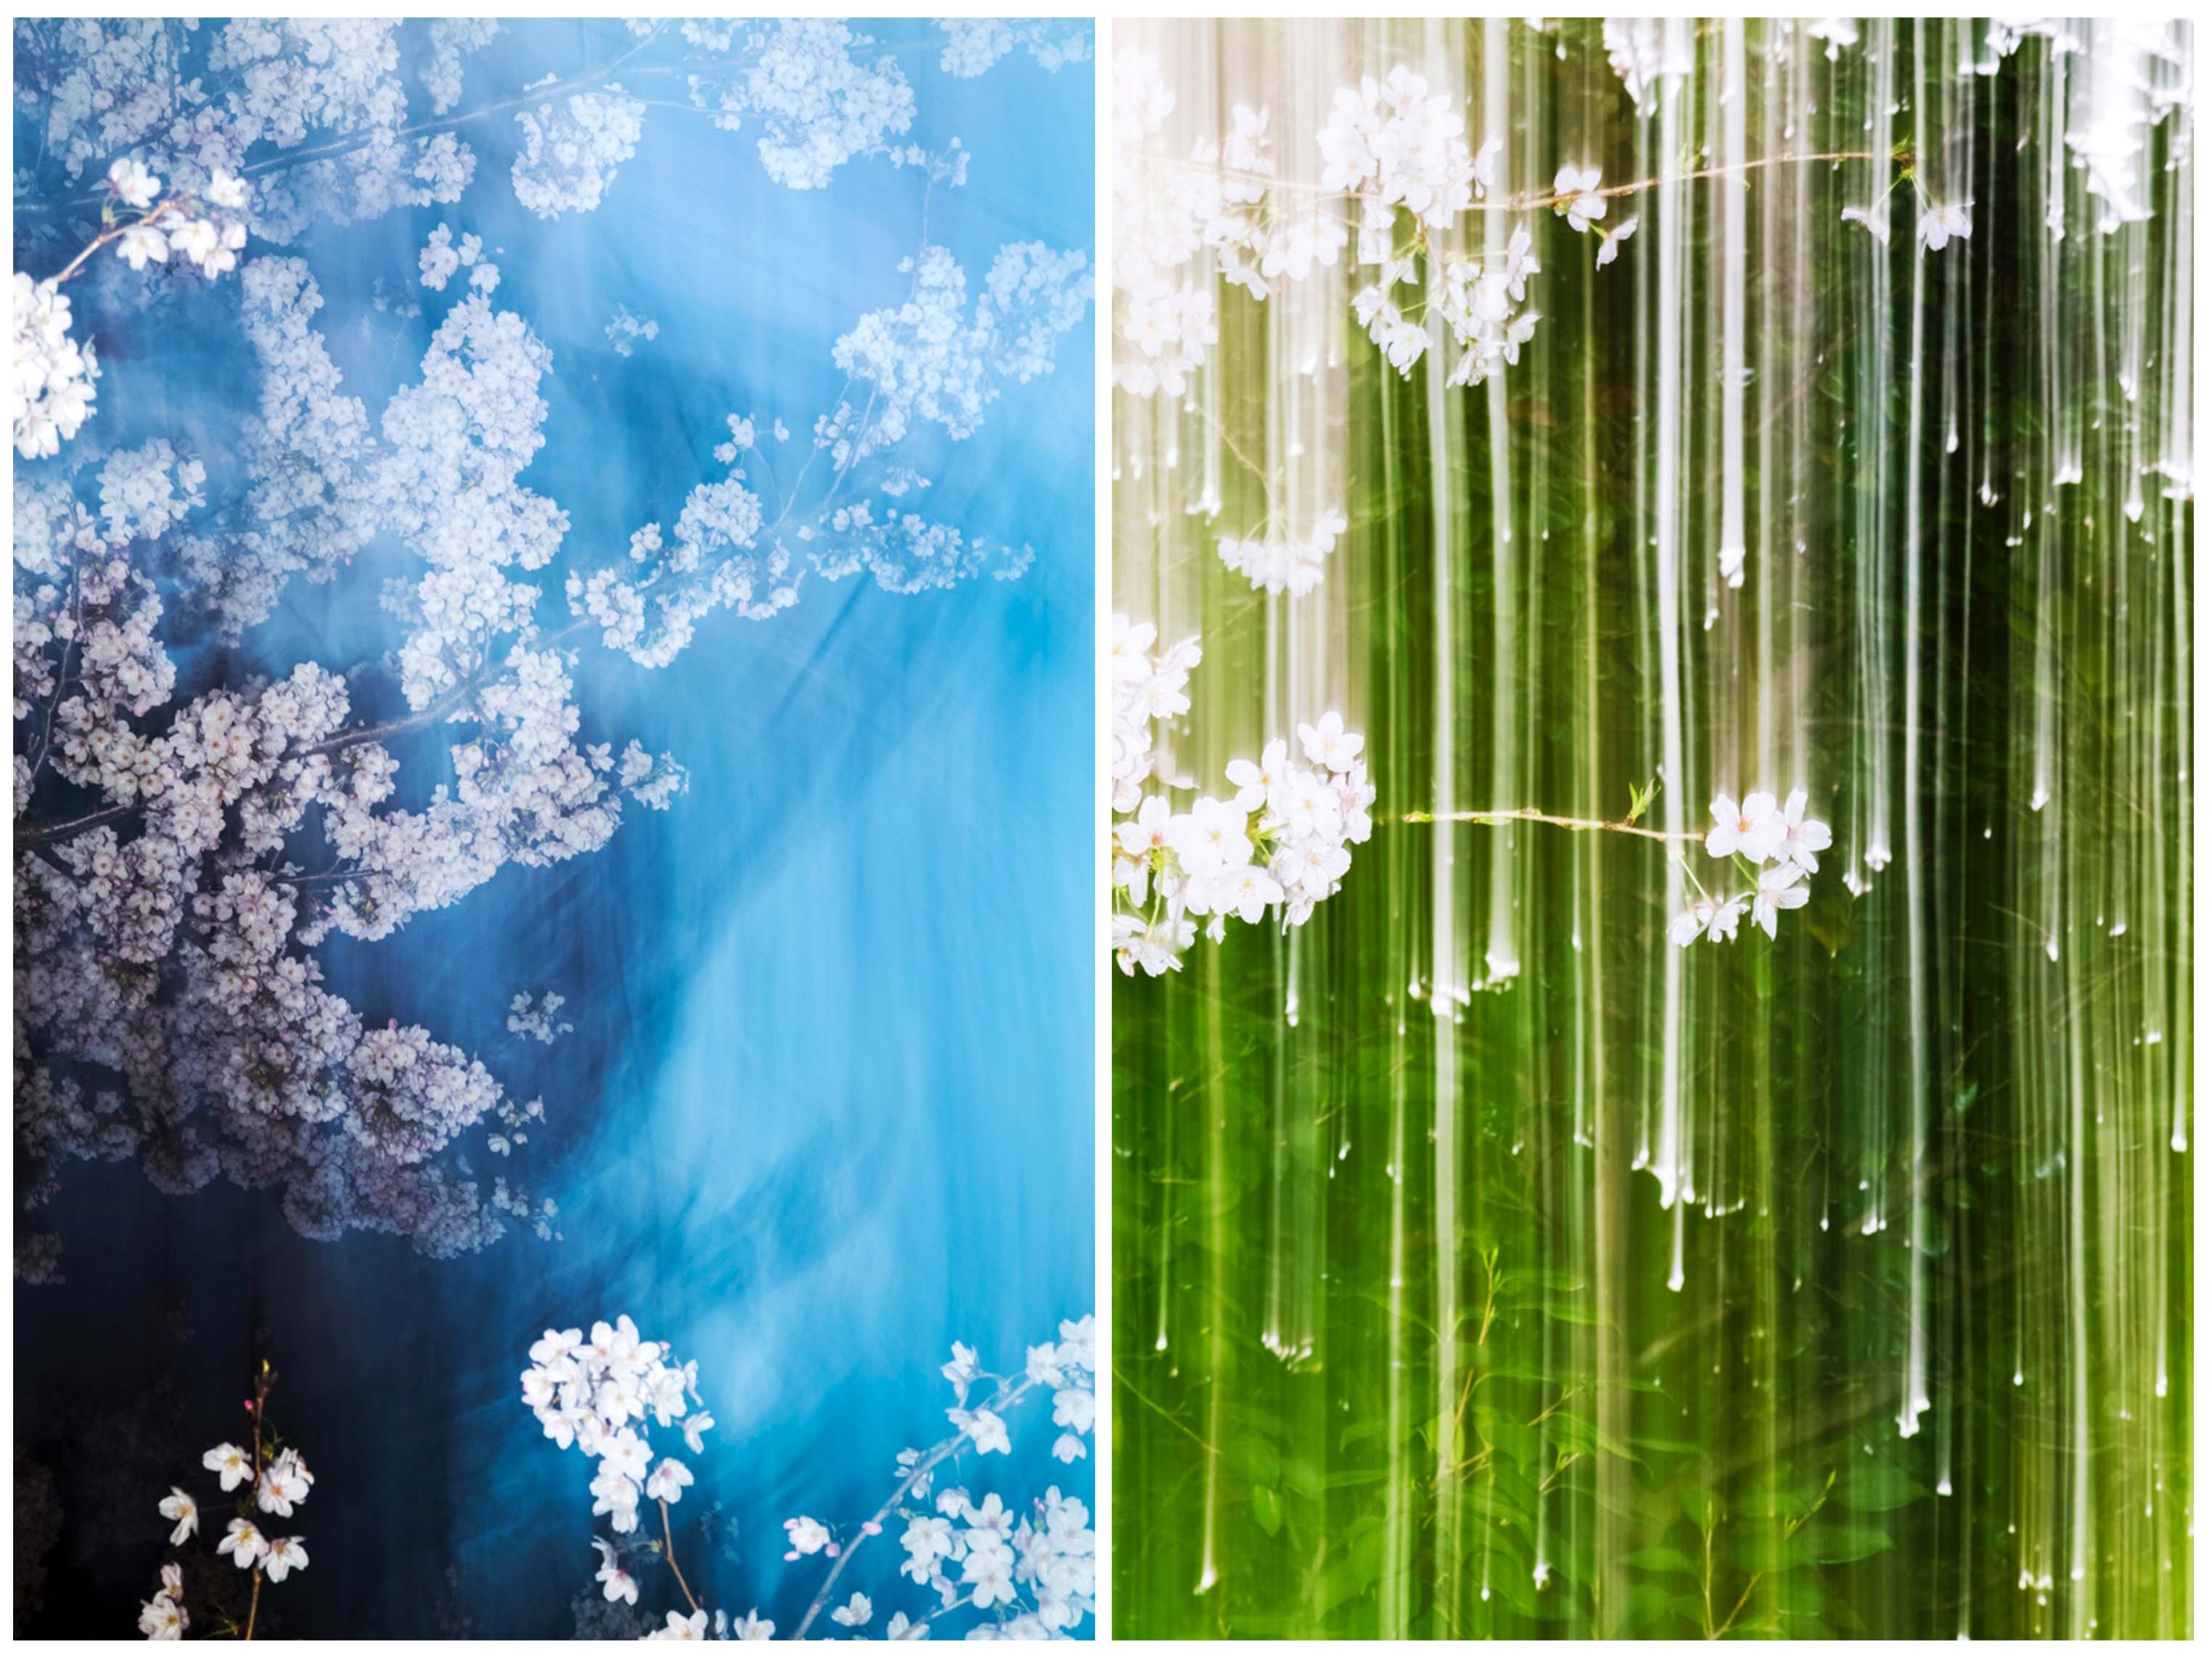 Two images from the Sakura series © Yoshinori Mizutani, courtesy by IBASHO